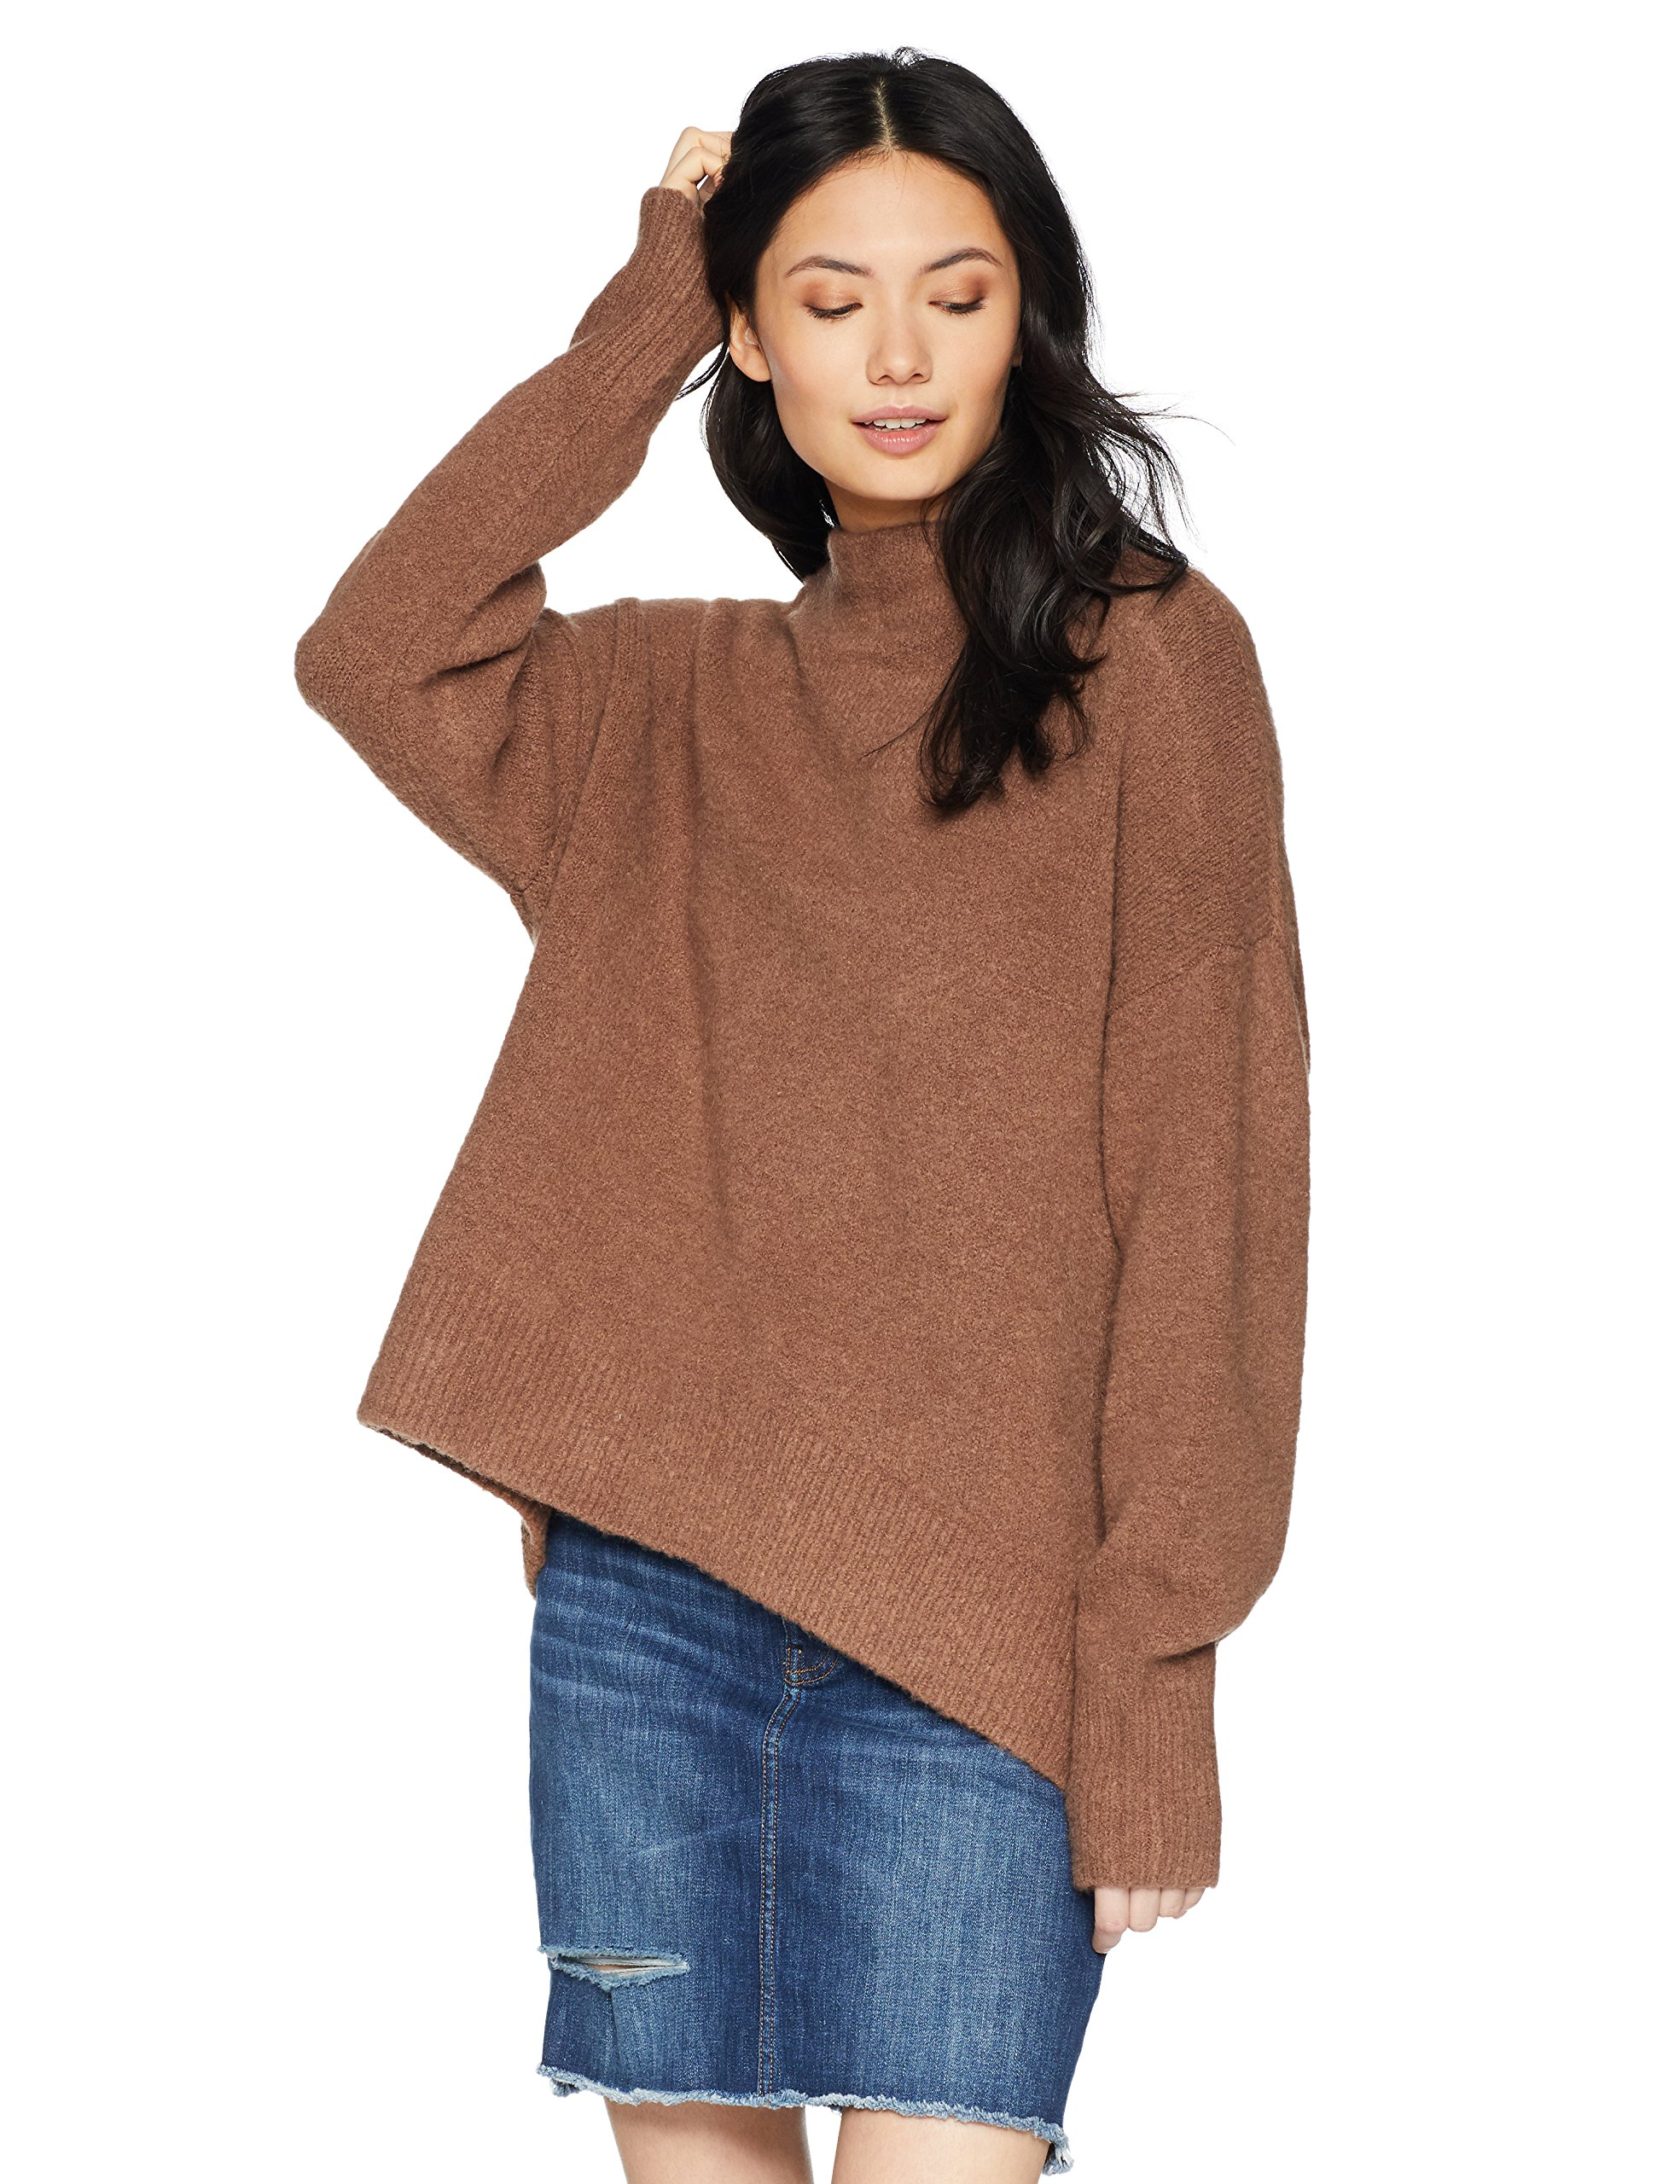 Cable Stitch Women's Mock Neck Cozy Sweater Large Caramel by Cable Stitch